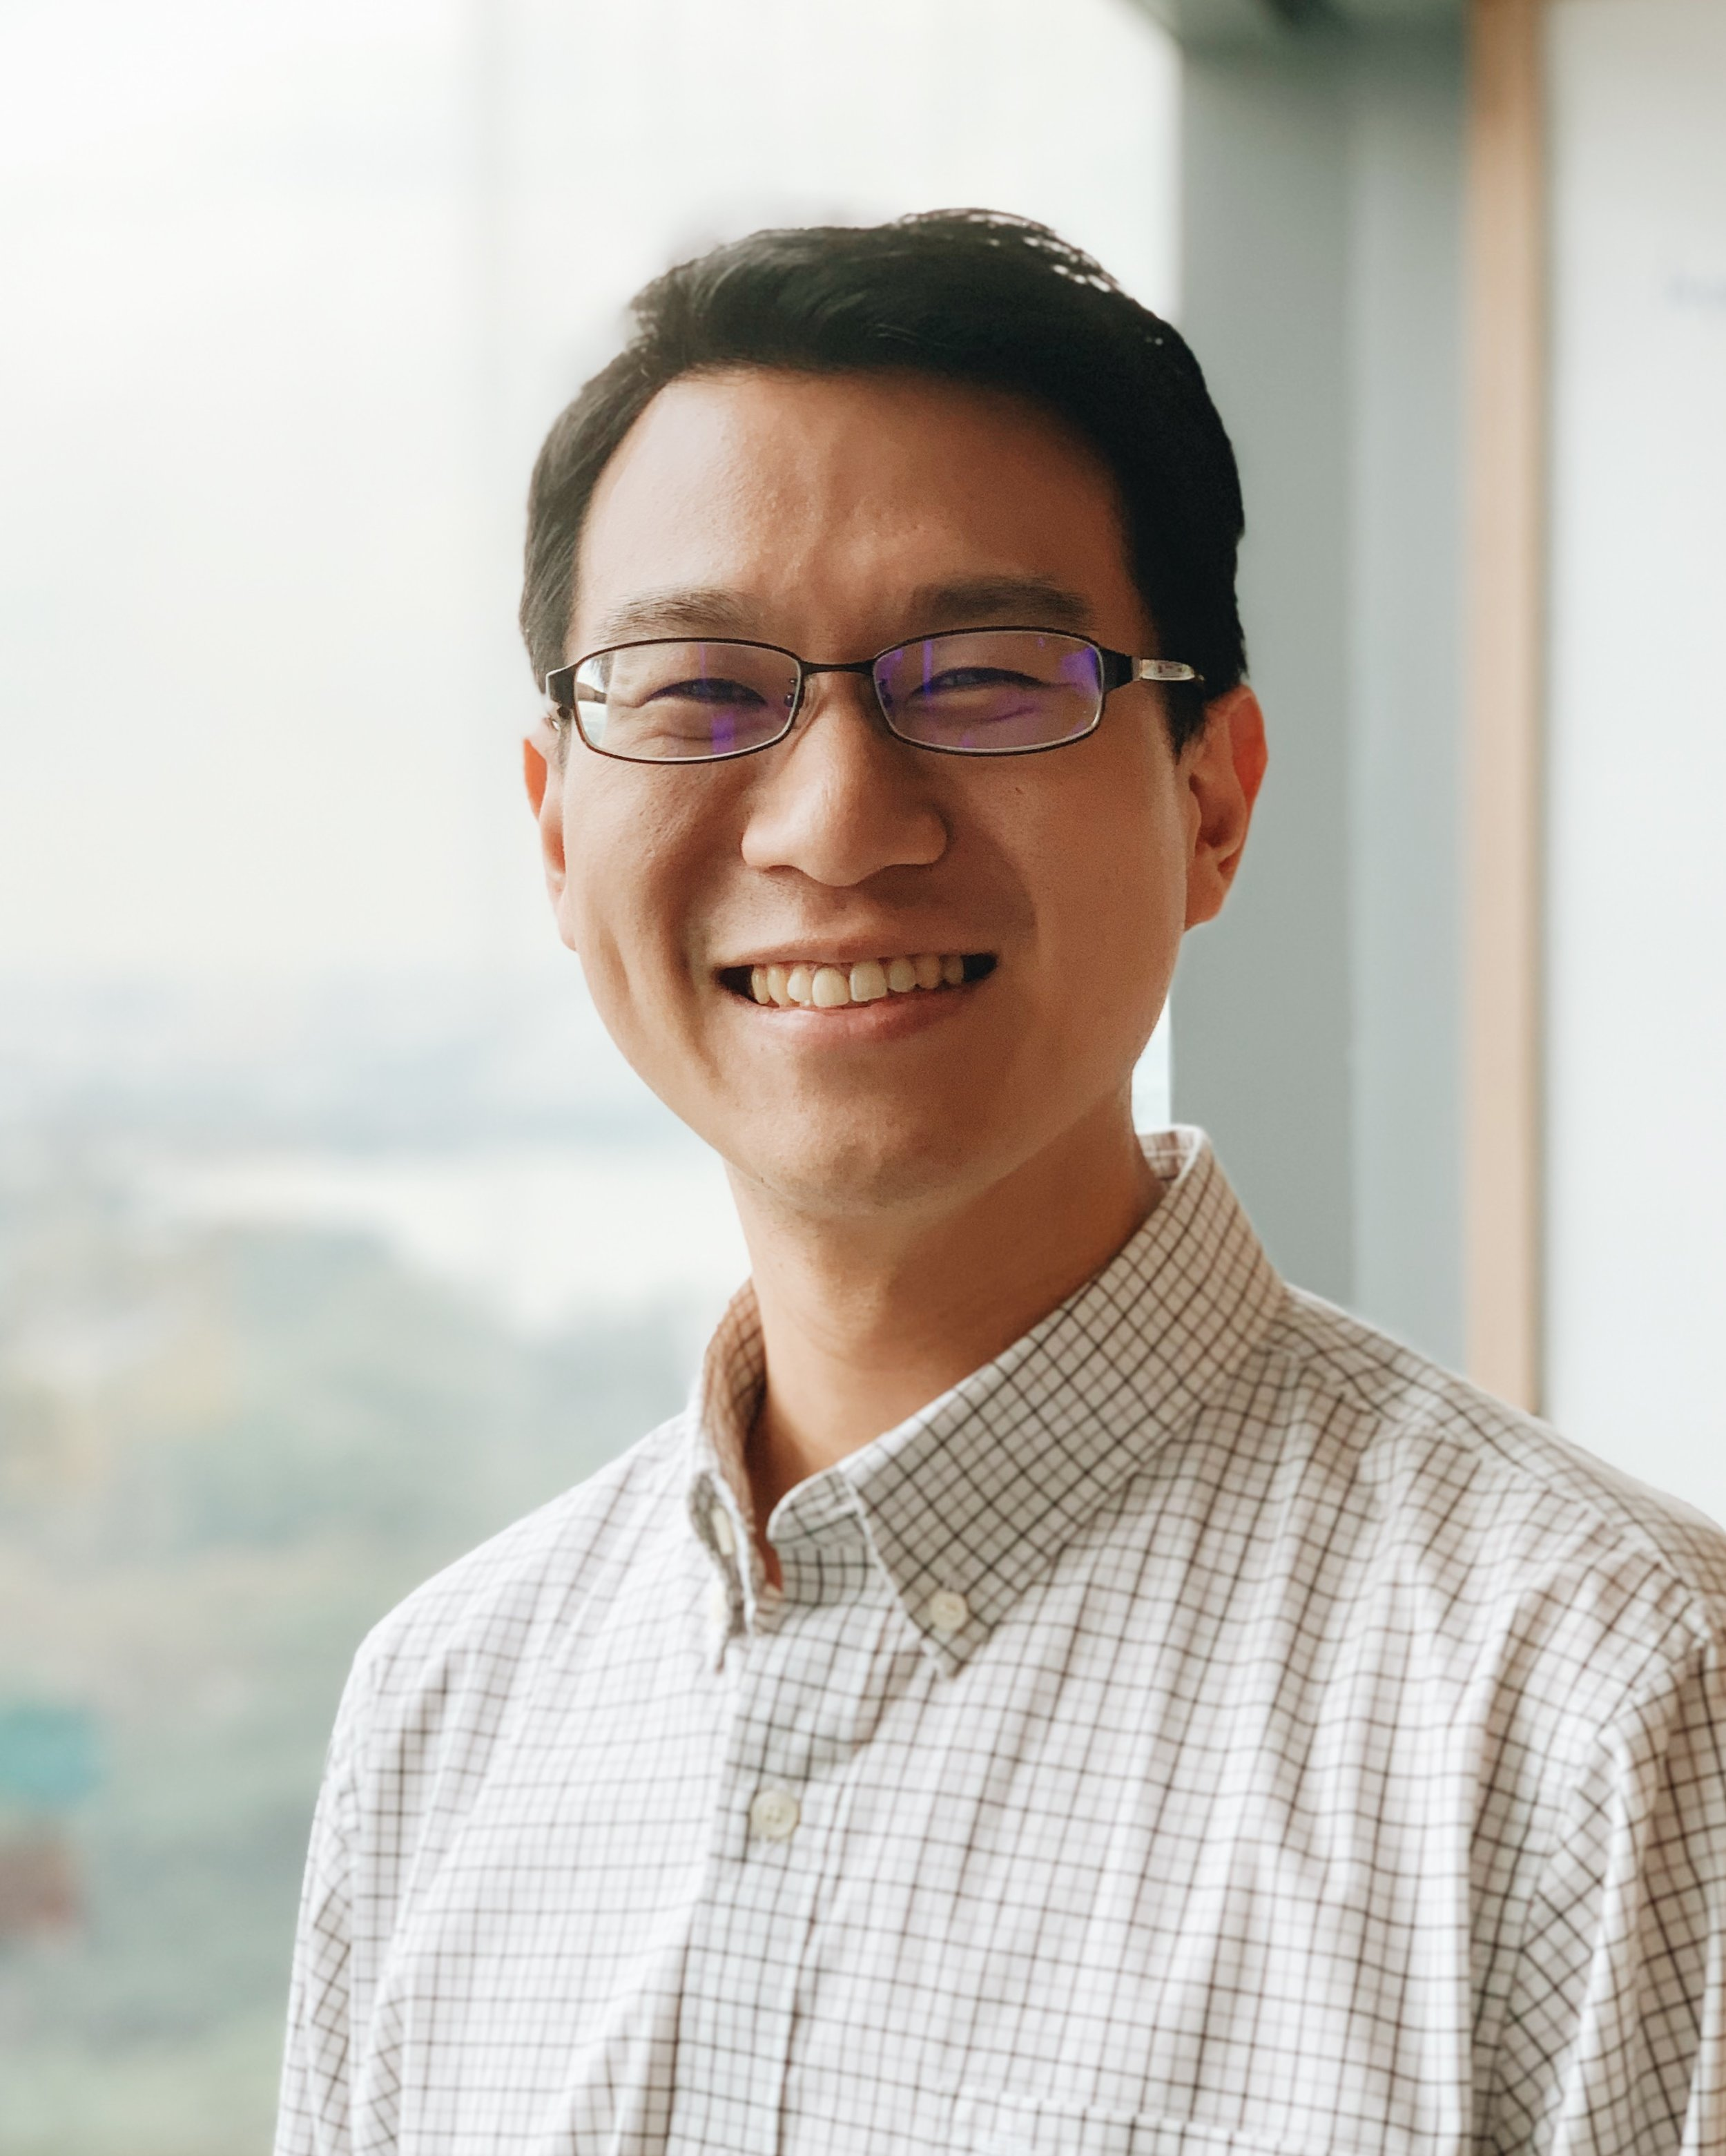 Loh Wei - Director of Finance